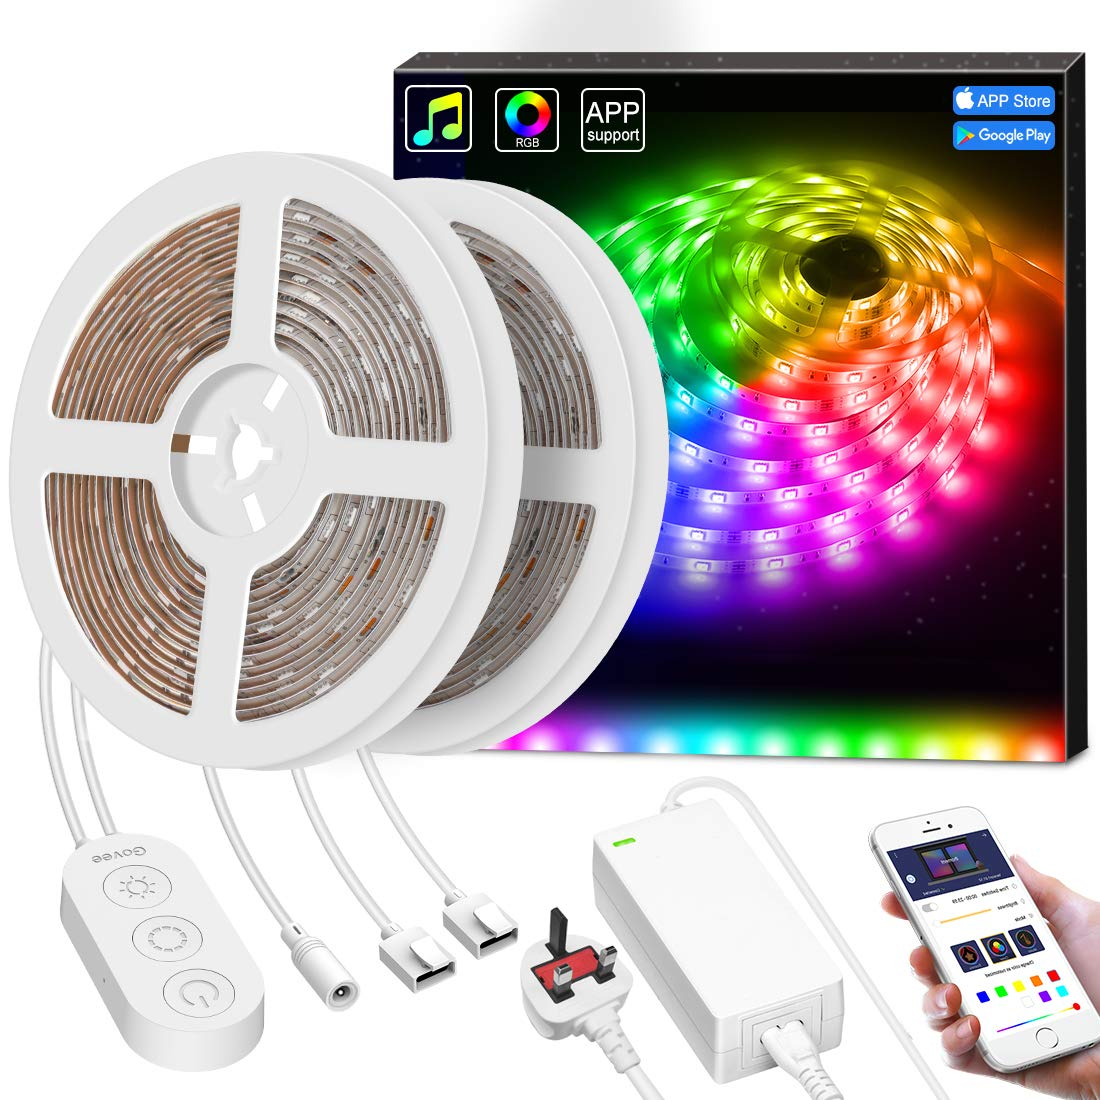 LED Strip Lights, Govee 10M Dream Colour Strip Light Music Sync with Brighter 5050 LEDs, Colour Changing Waterproof LED Lighting Kit App Controlled